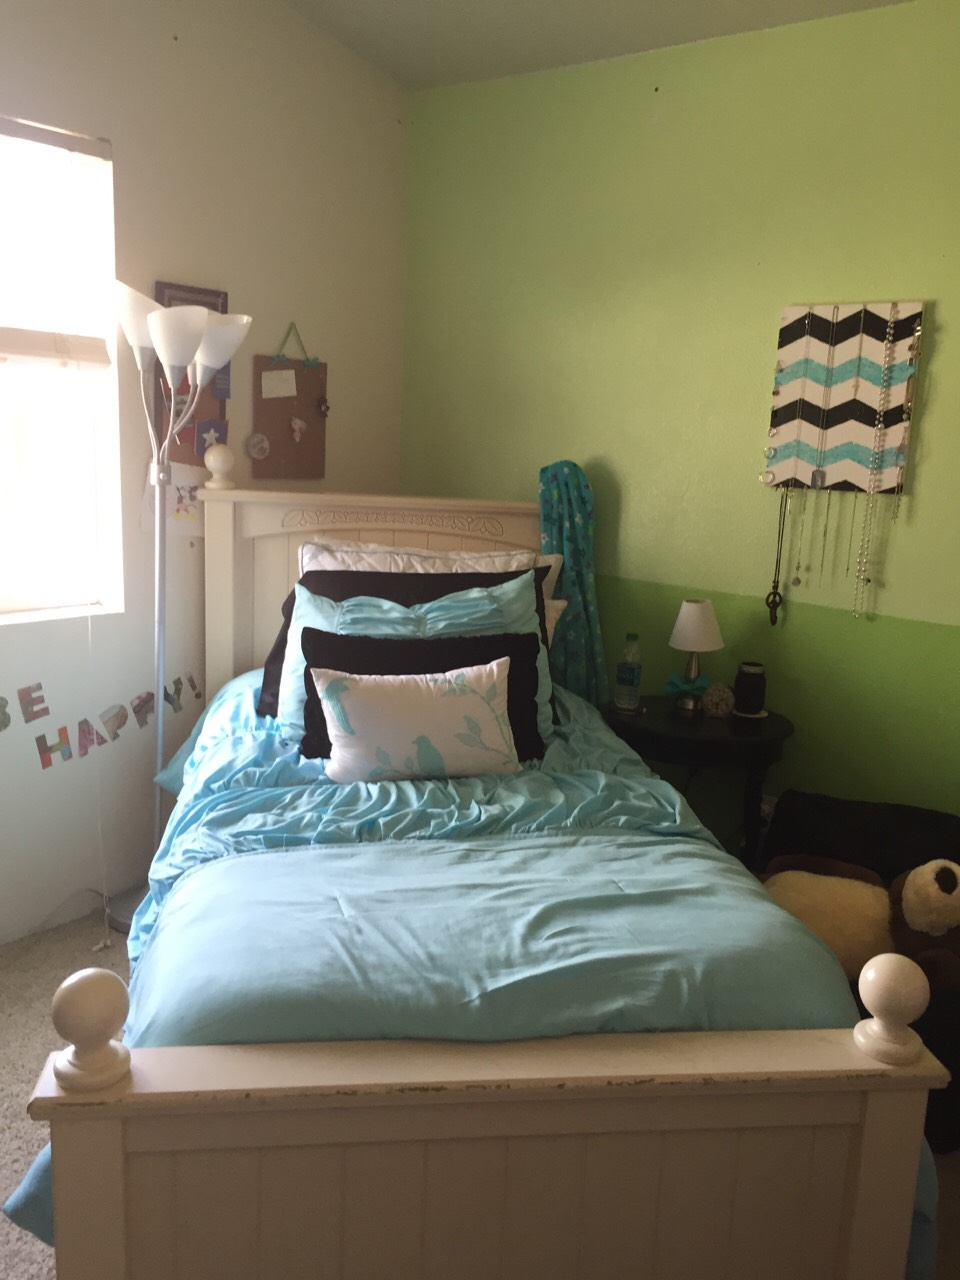 Here is my room after cleaning, organizing, and decorating my room...